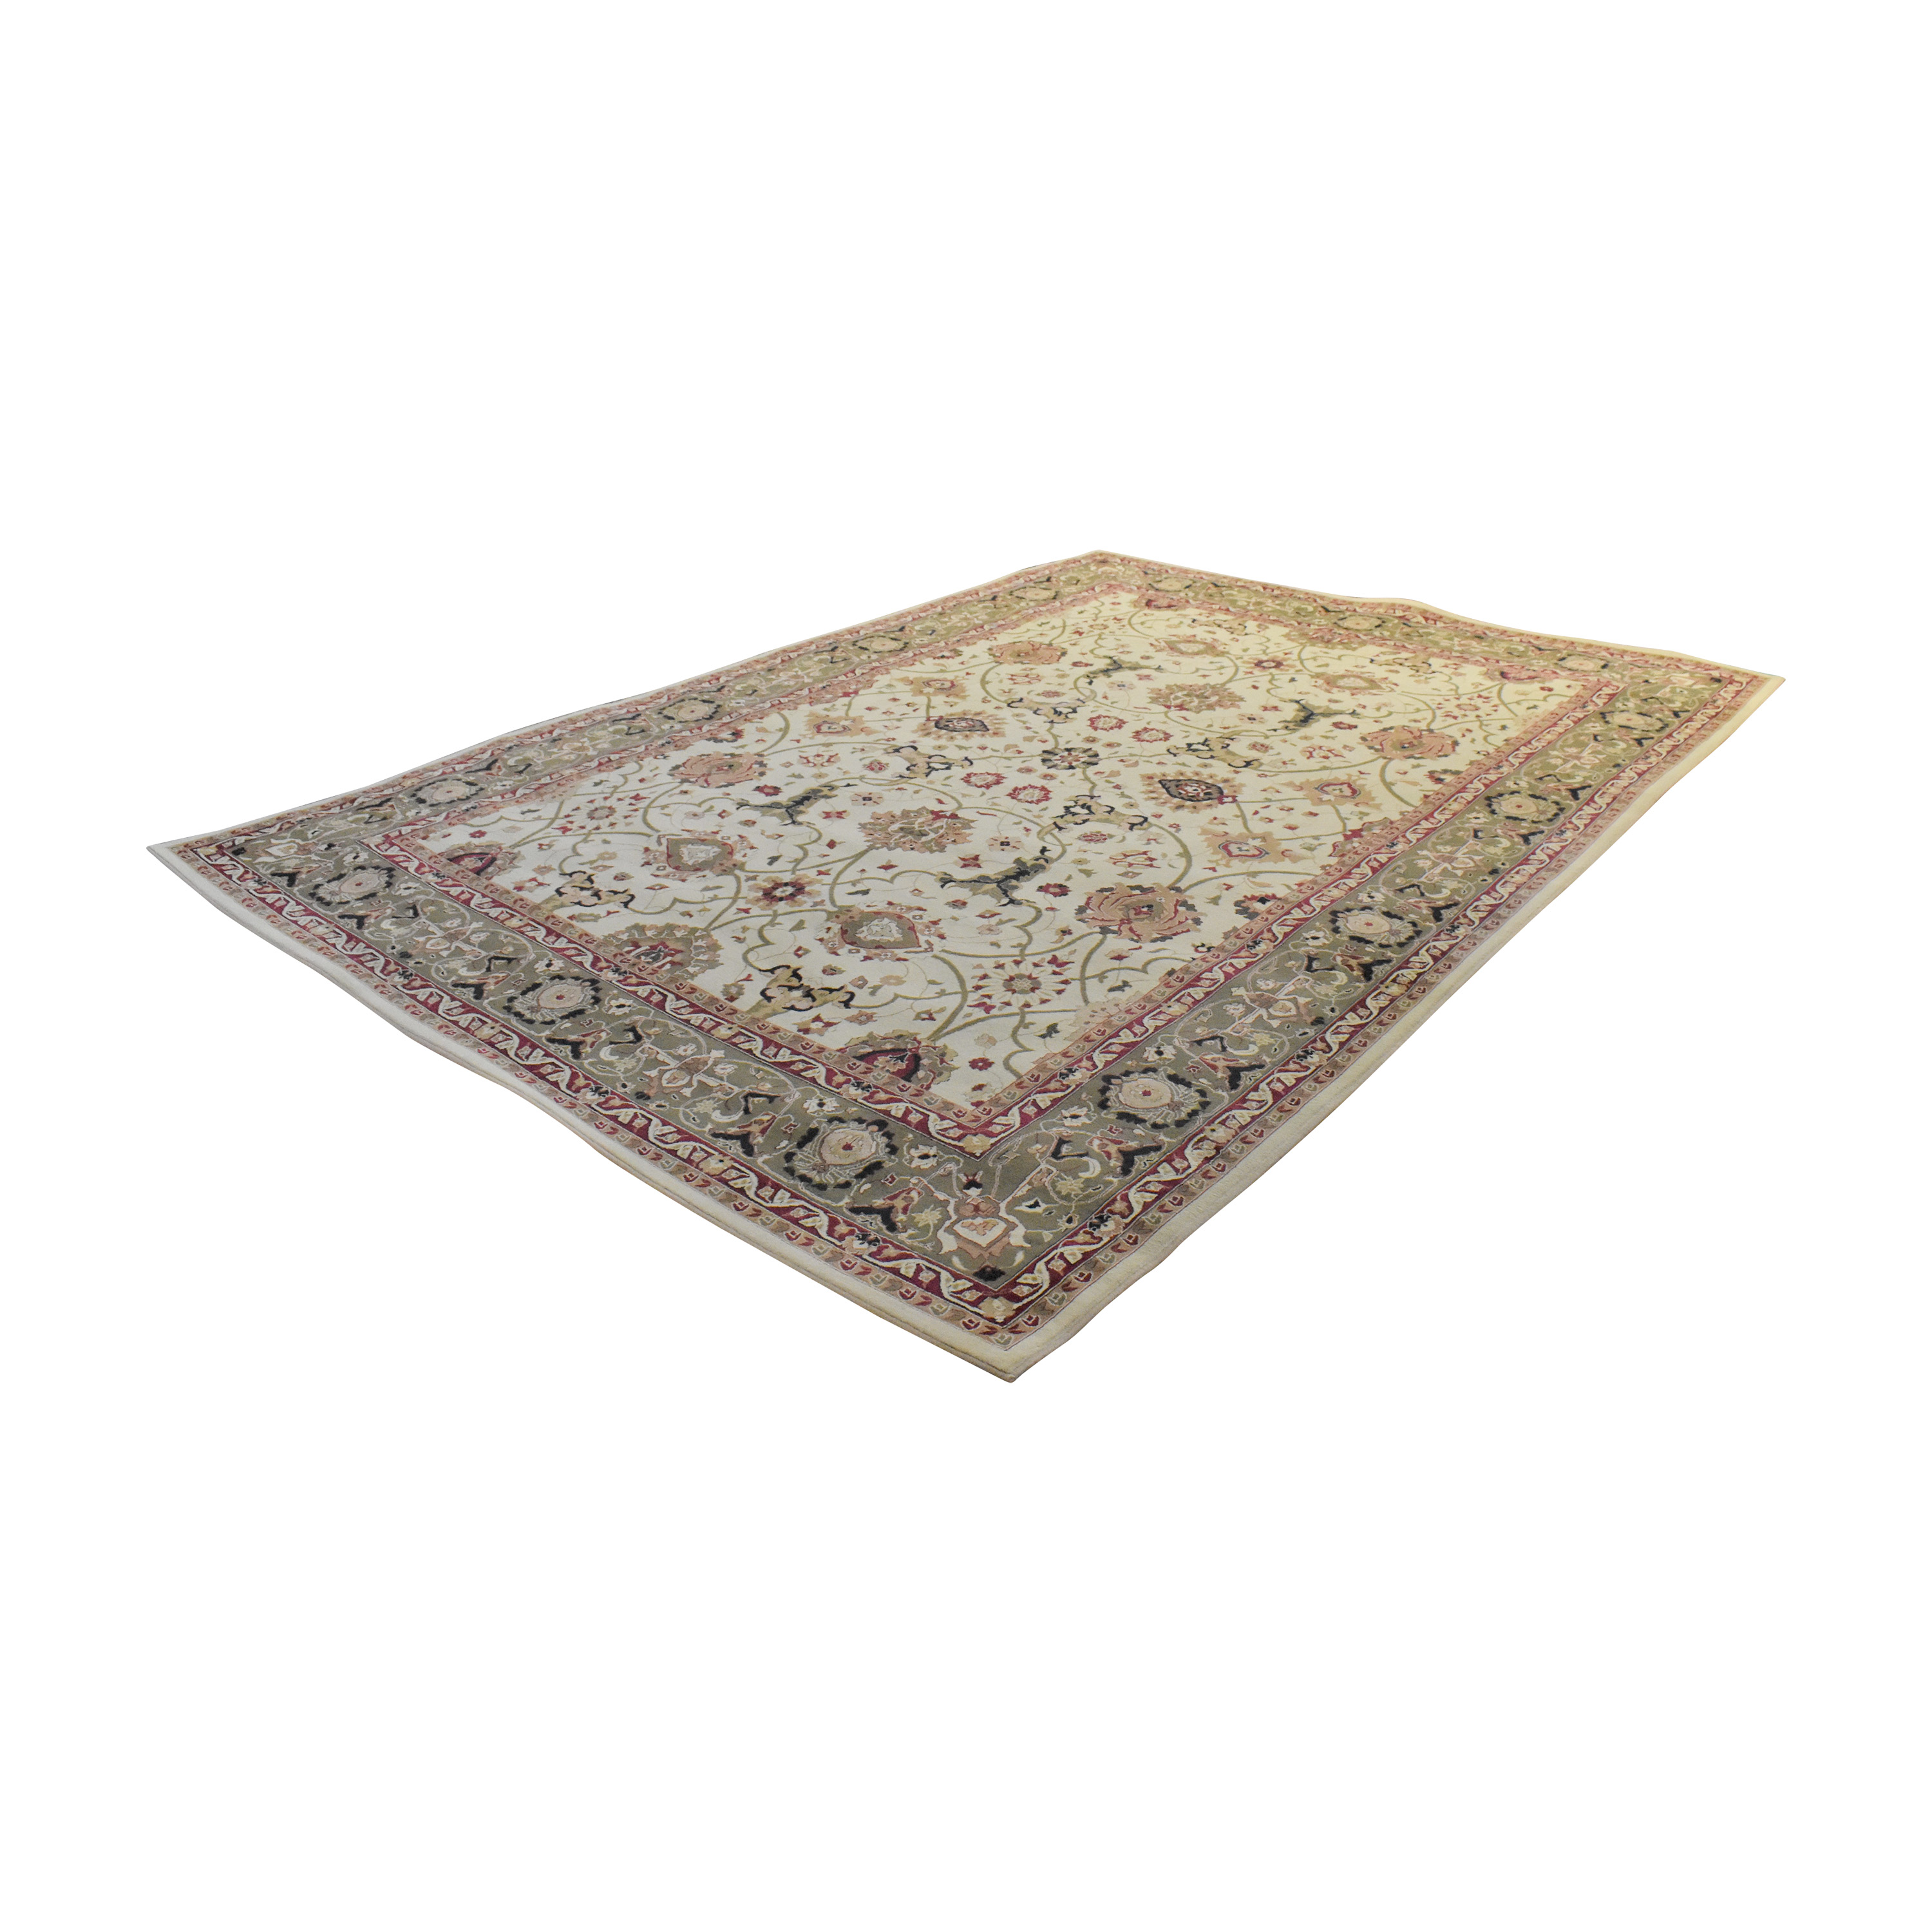 Concord Global Trading Concord Persian Classics Nargis Rug second hand